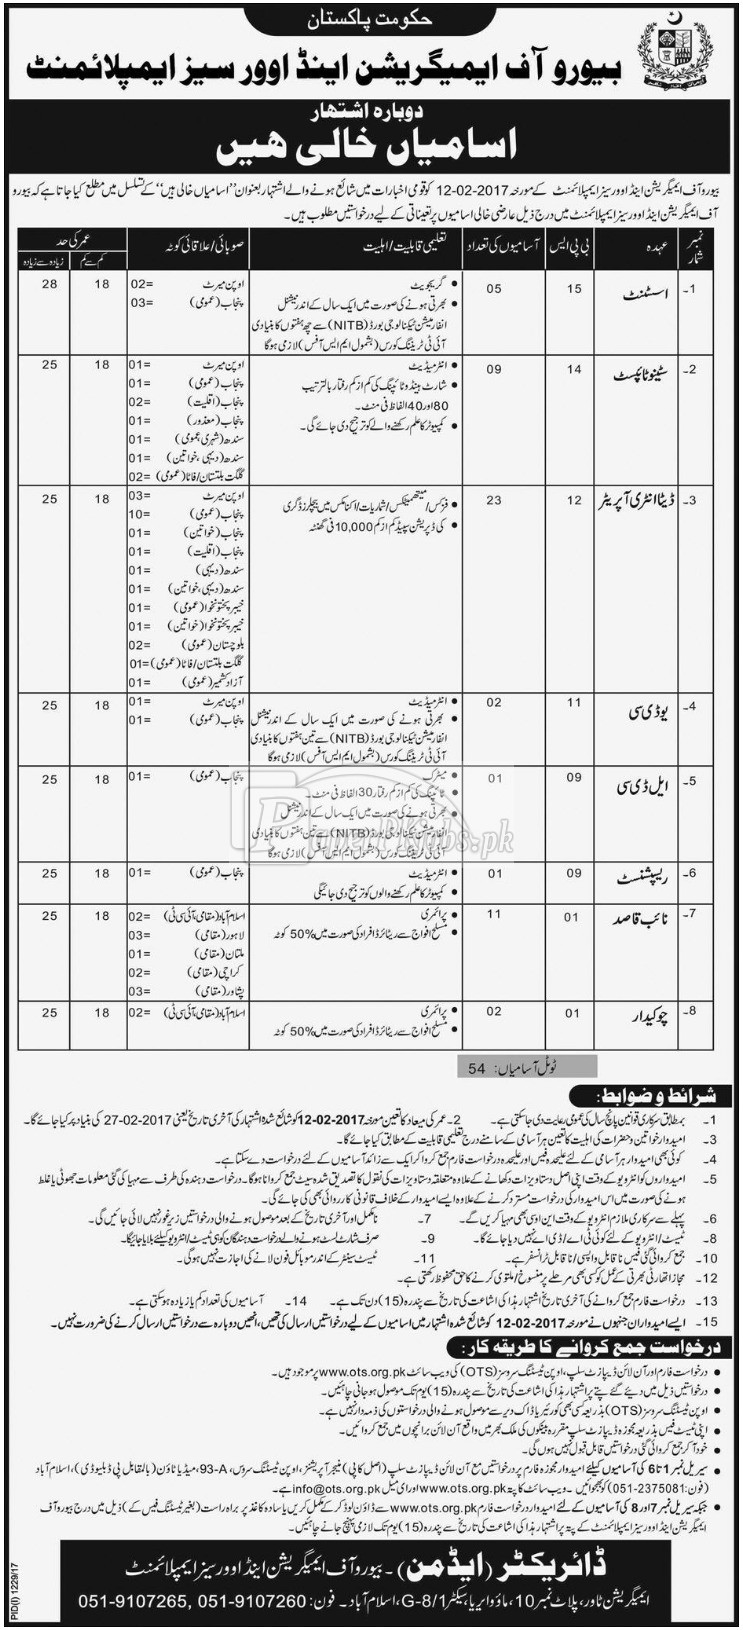 Bureau of Immigration & Overseas Employment Islamabad OTS Jobs 2017